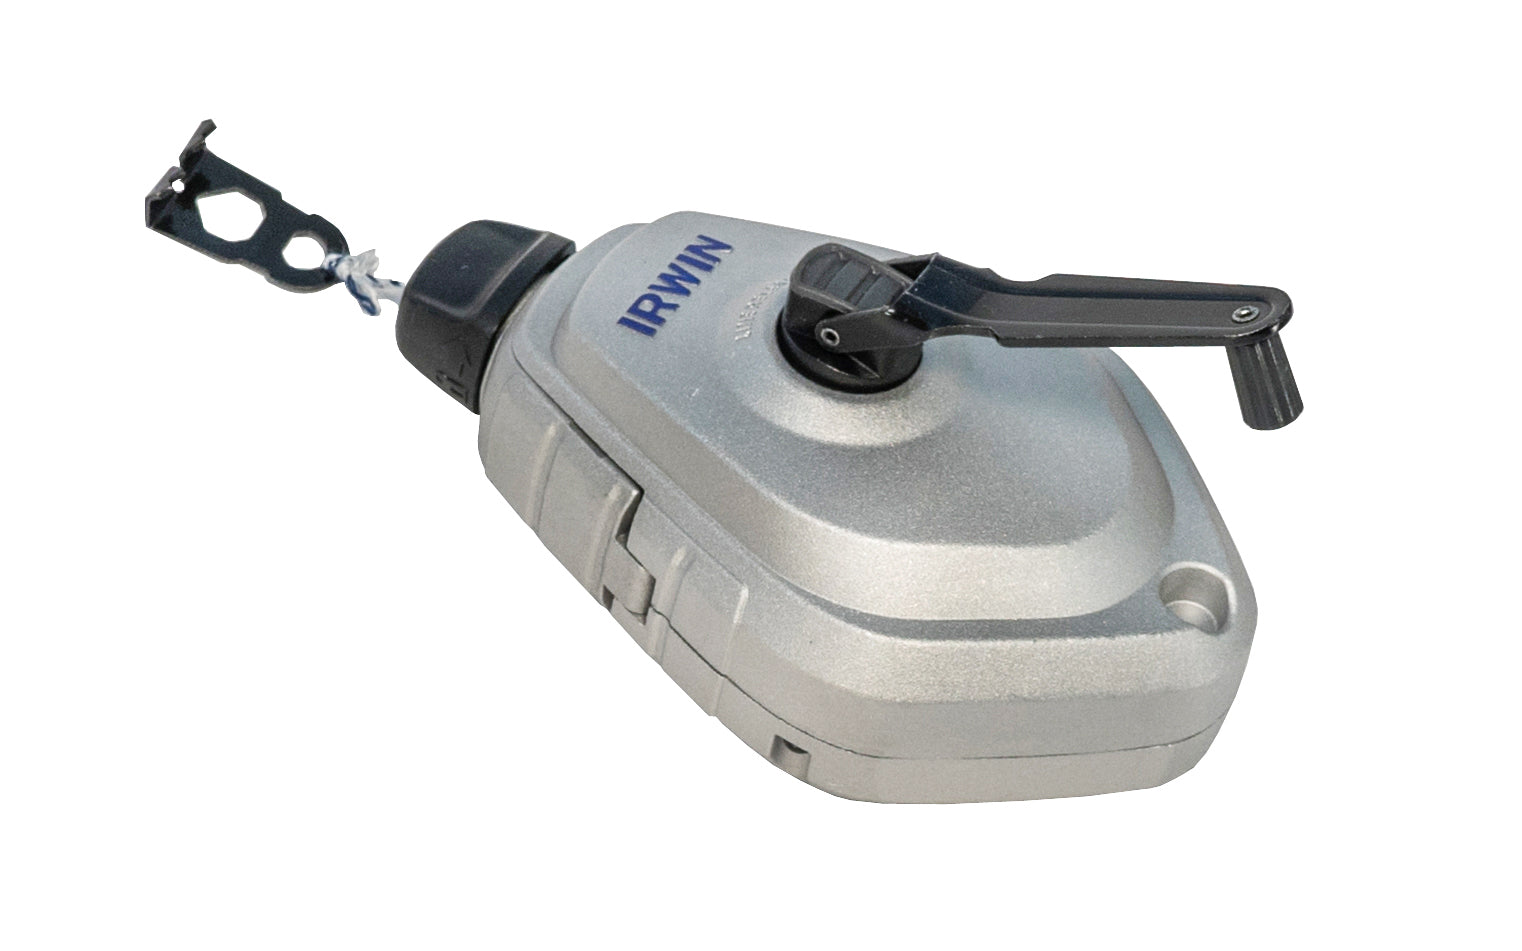 Irwin 100' Strait-Line Chalk Line Reel - Model No. 1932877 ~ Irwin Strait Line MACH6 ~  gear ratio to rewind the line 6X faster than traditional chalk reels